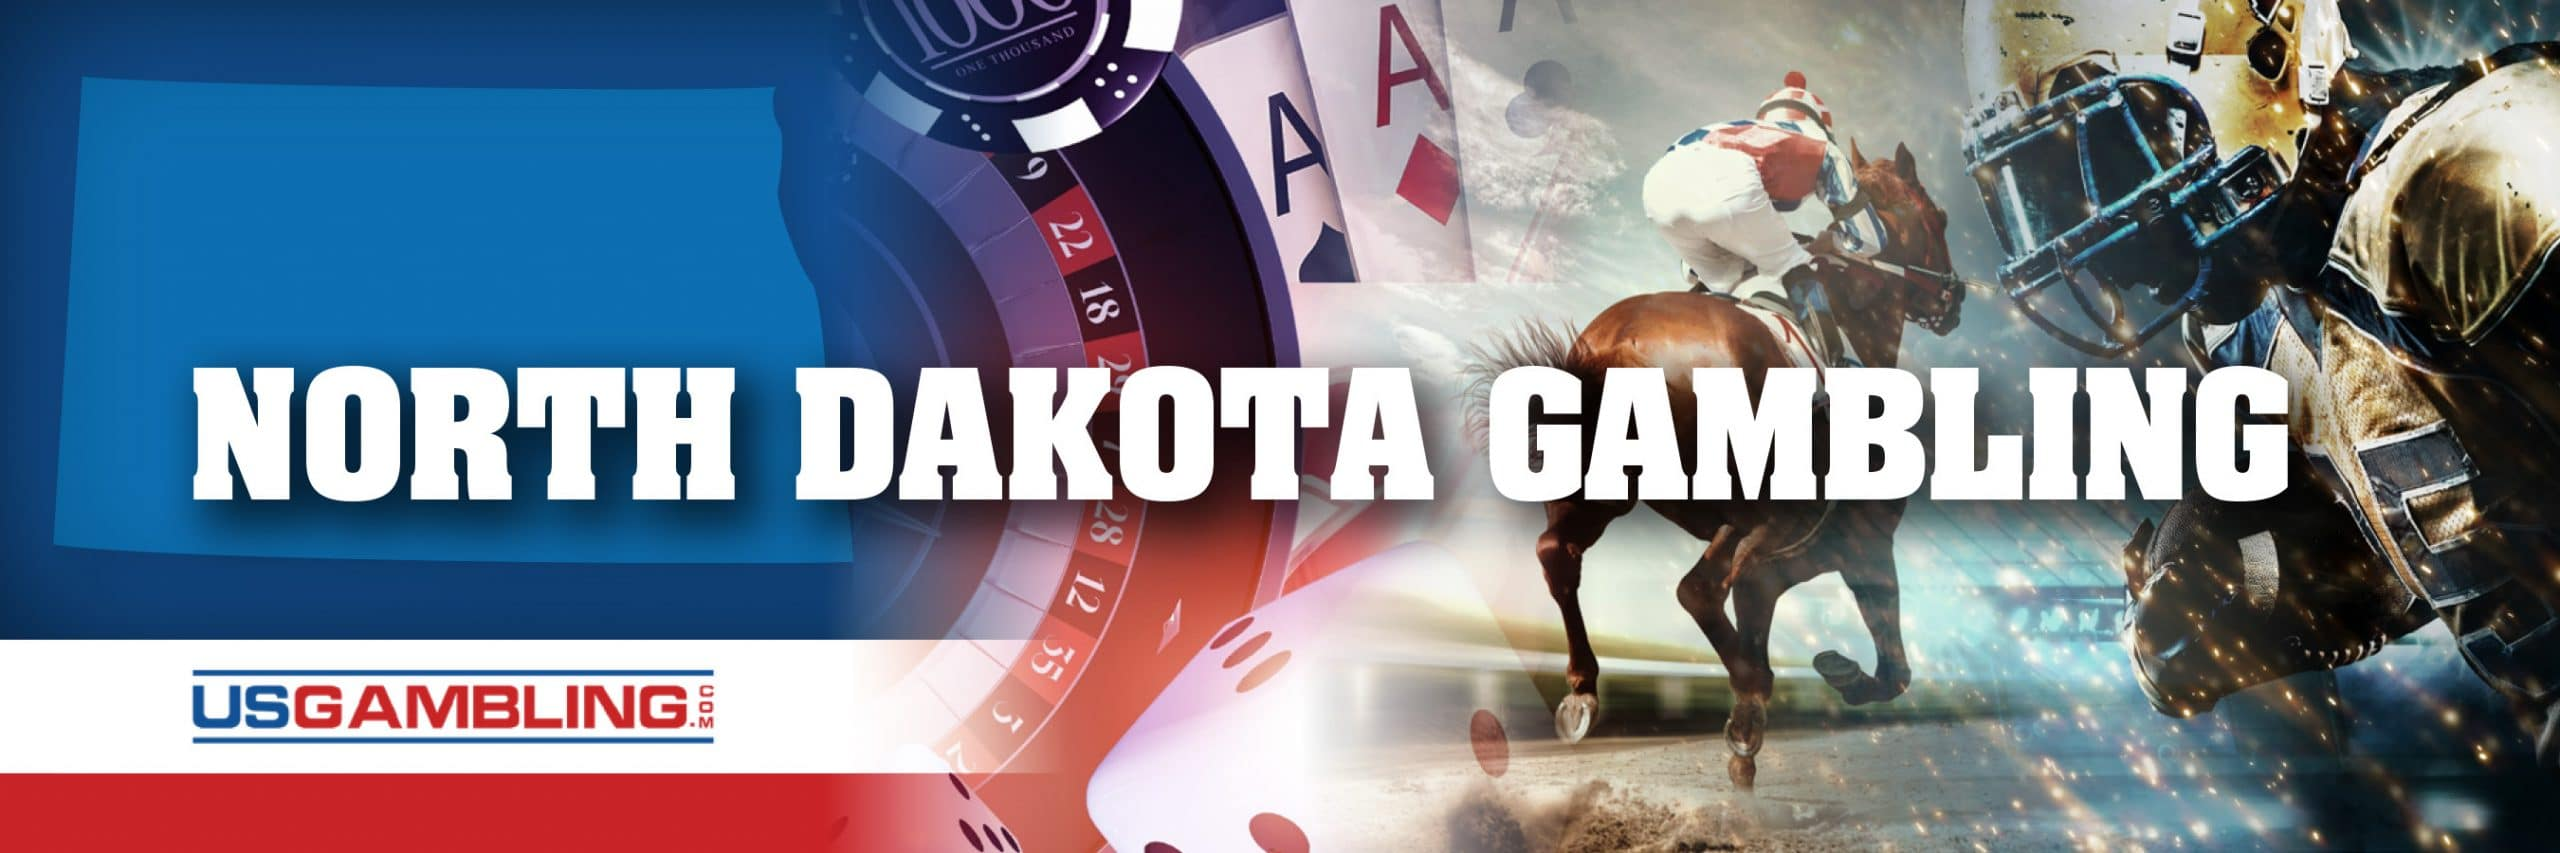 Legal North Dakota Gambling